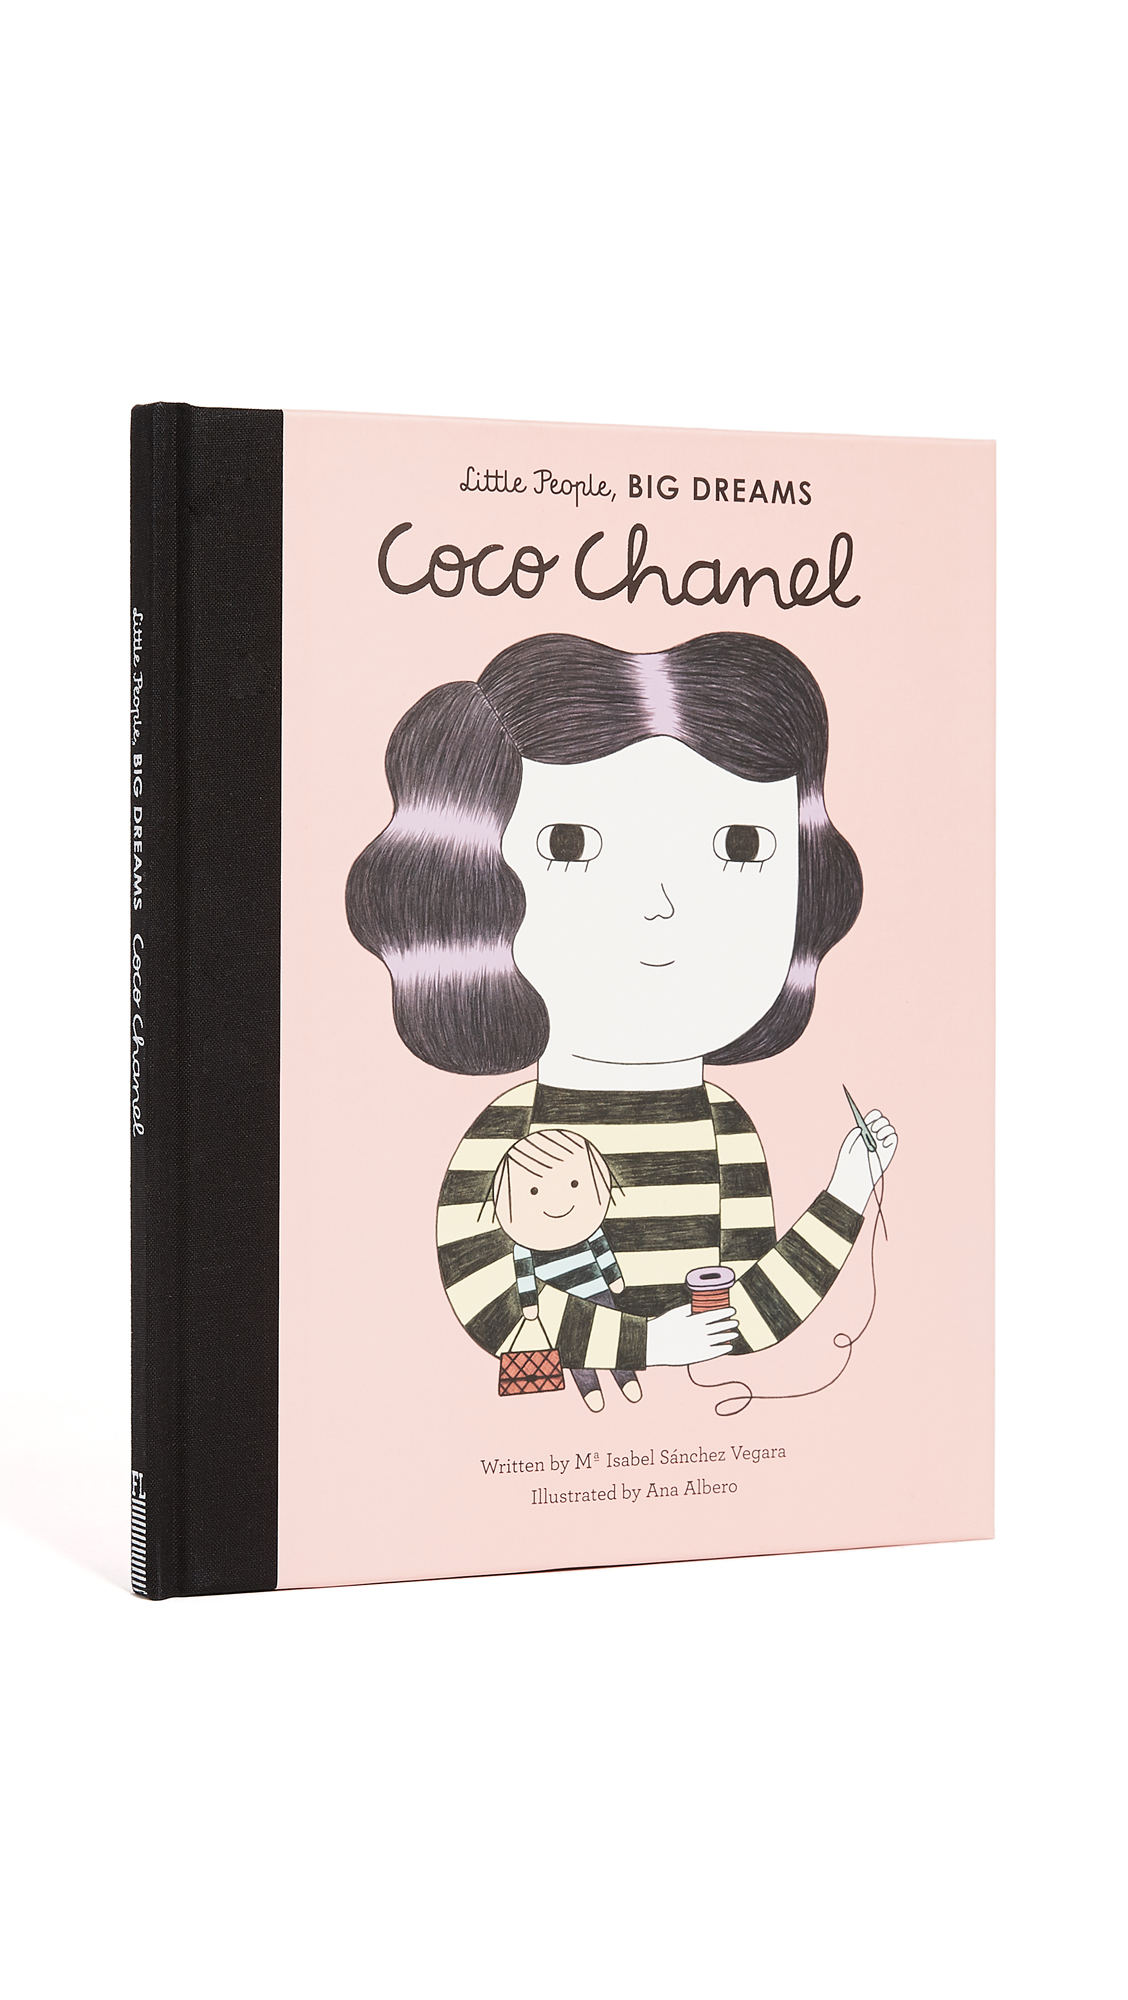 For ages 4-8 years. Part of a children's series, this sweet volume tells the story of Coco Chanel. The story starts with her early years in an orphanage where she is a genius with needle and thread, and moves through her life as a cabaret singer, hatmaker, and, eventually, international fashion designer. Finished with Ana Albero's distinctive illustrations throughout (as well as extra facts about Coco's life in the back of the book)! Imported, China. By Maria Isabel Sánchez Vegara. Hardcover. 32 pages. Imprint: Frances Lincoln Children's Books. ISBN: 978-1847807847 Measurements Width: 8in / 20.5cm Height: 10in / 25.5cm